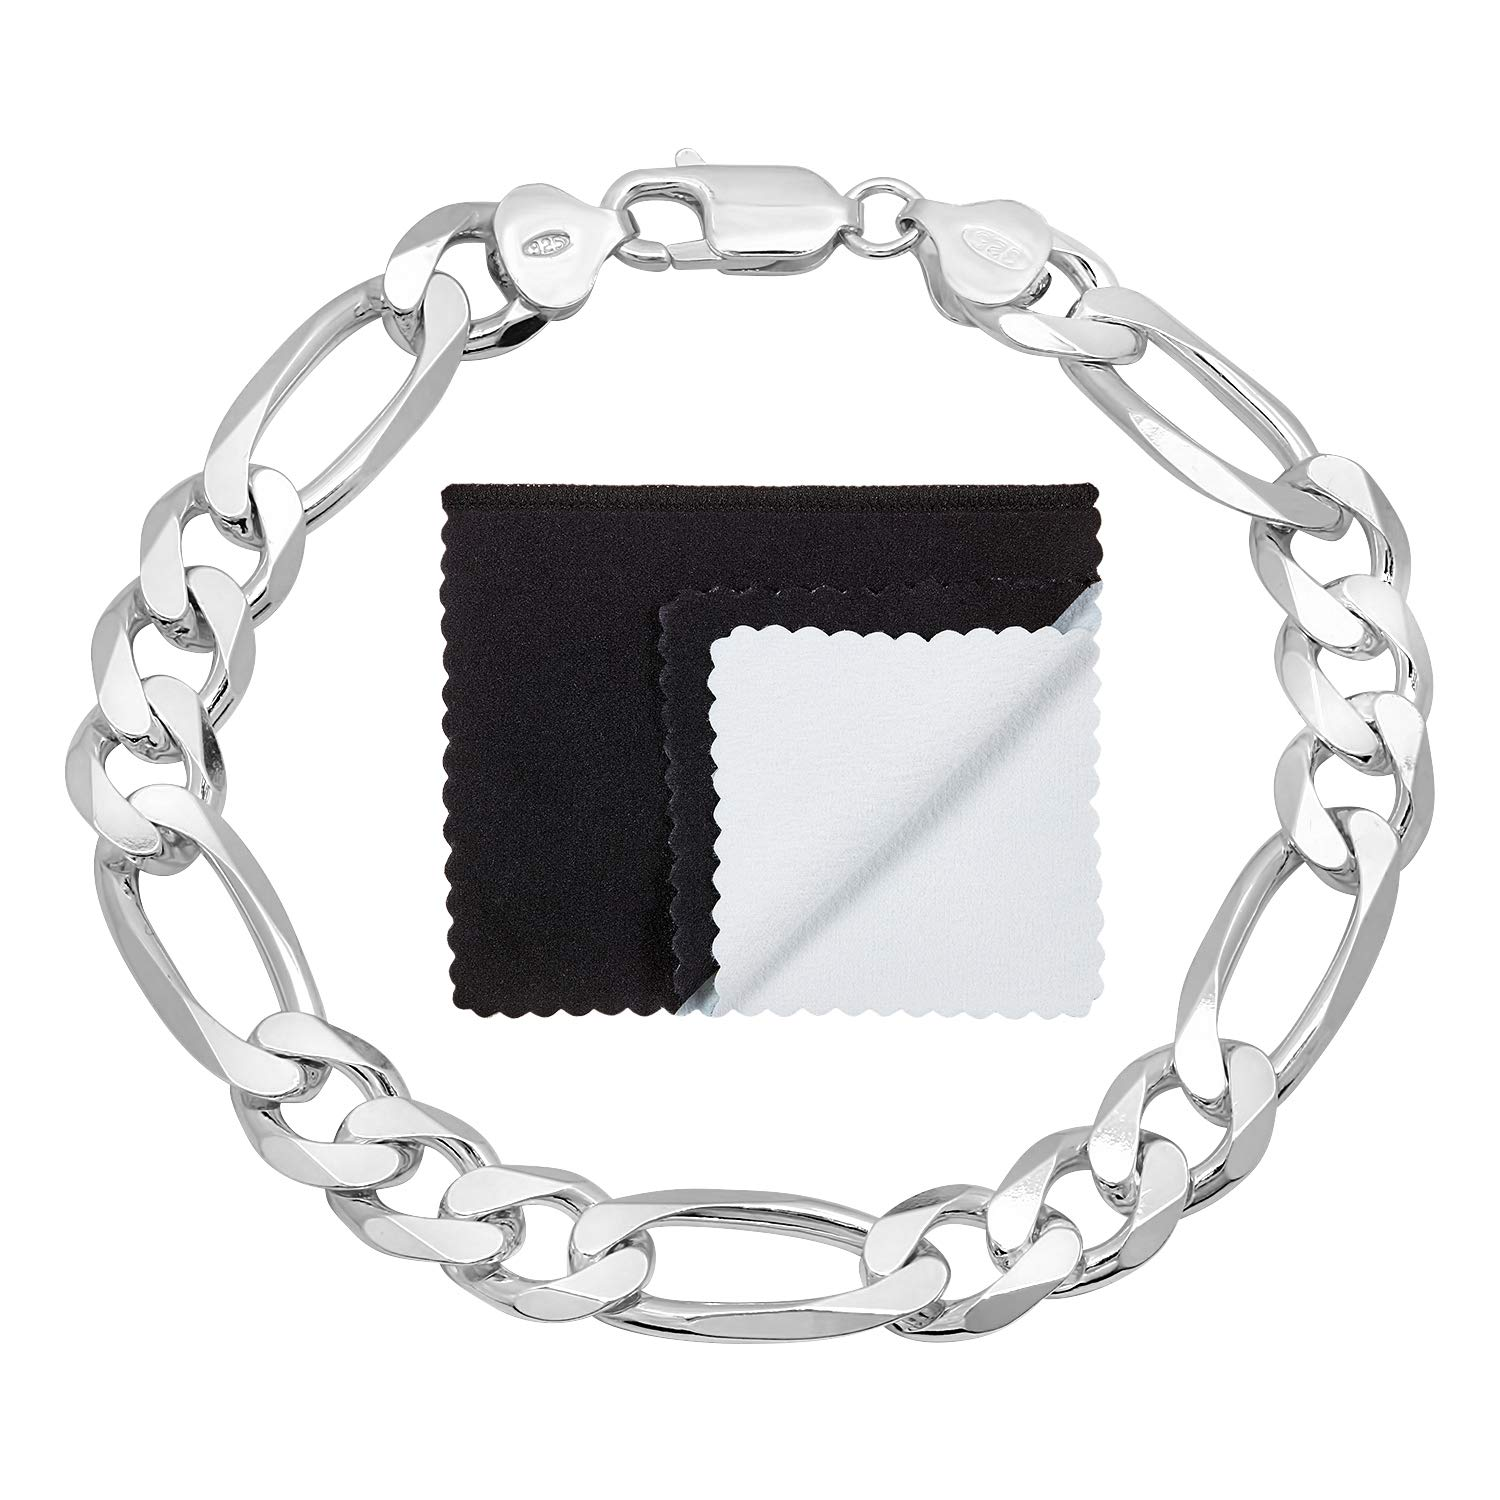 5mm High-Polished .925 Sterling Silver Flat Curb Chain Bracelet 7-11 Jewelry Cloth /& Pouch